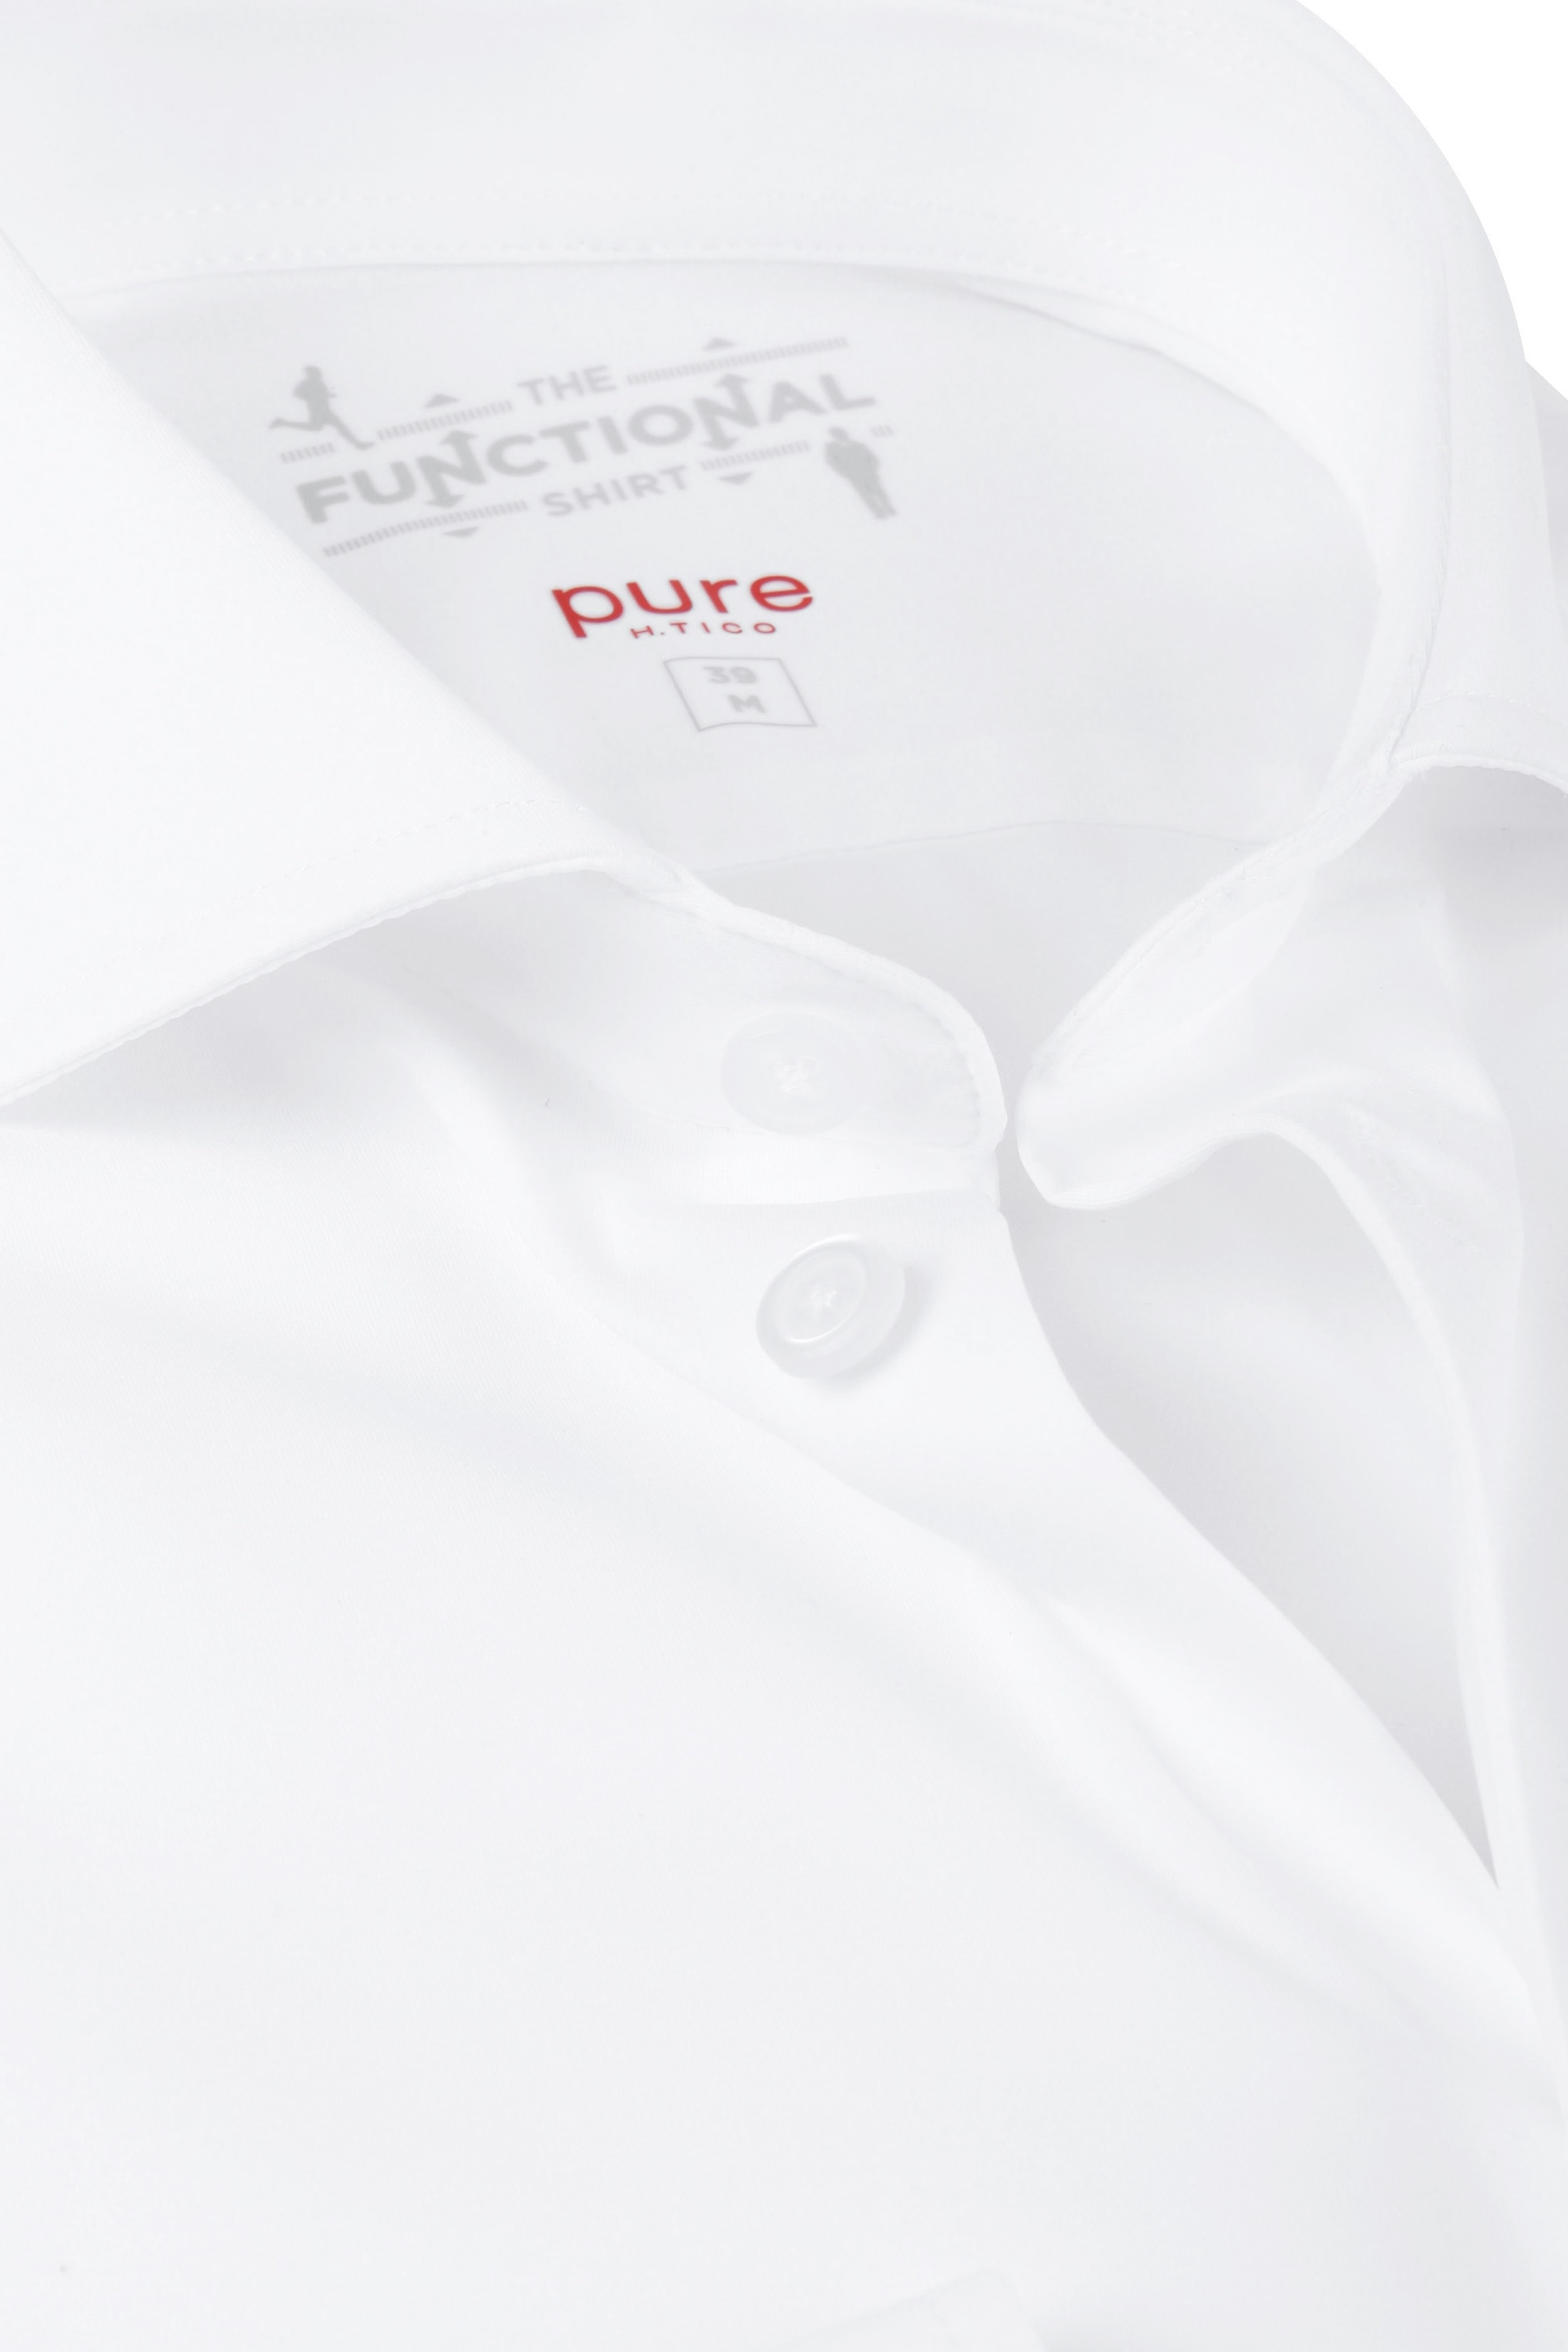 Pure H.Tico The Functional Shirt White photo 1